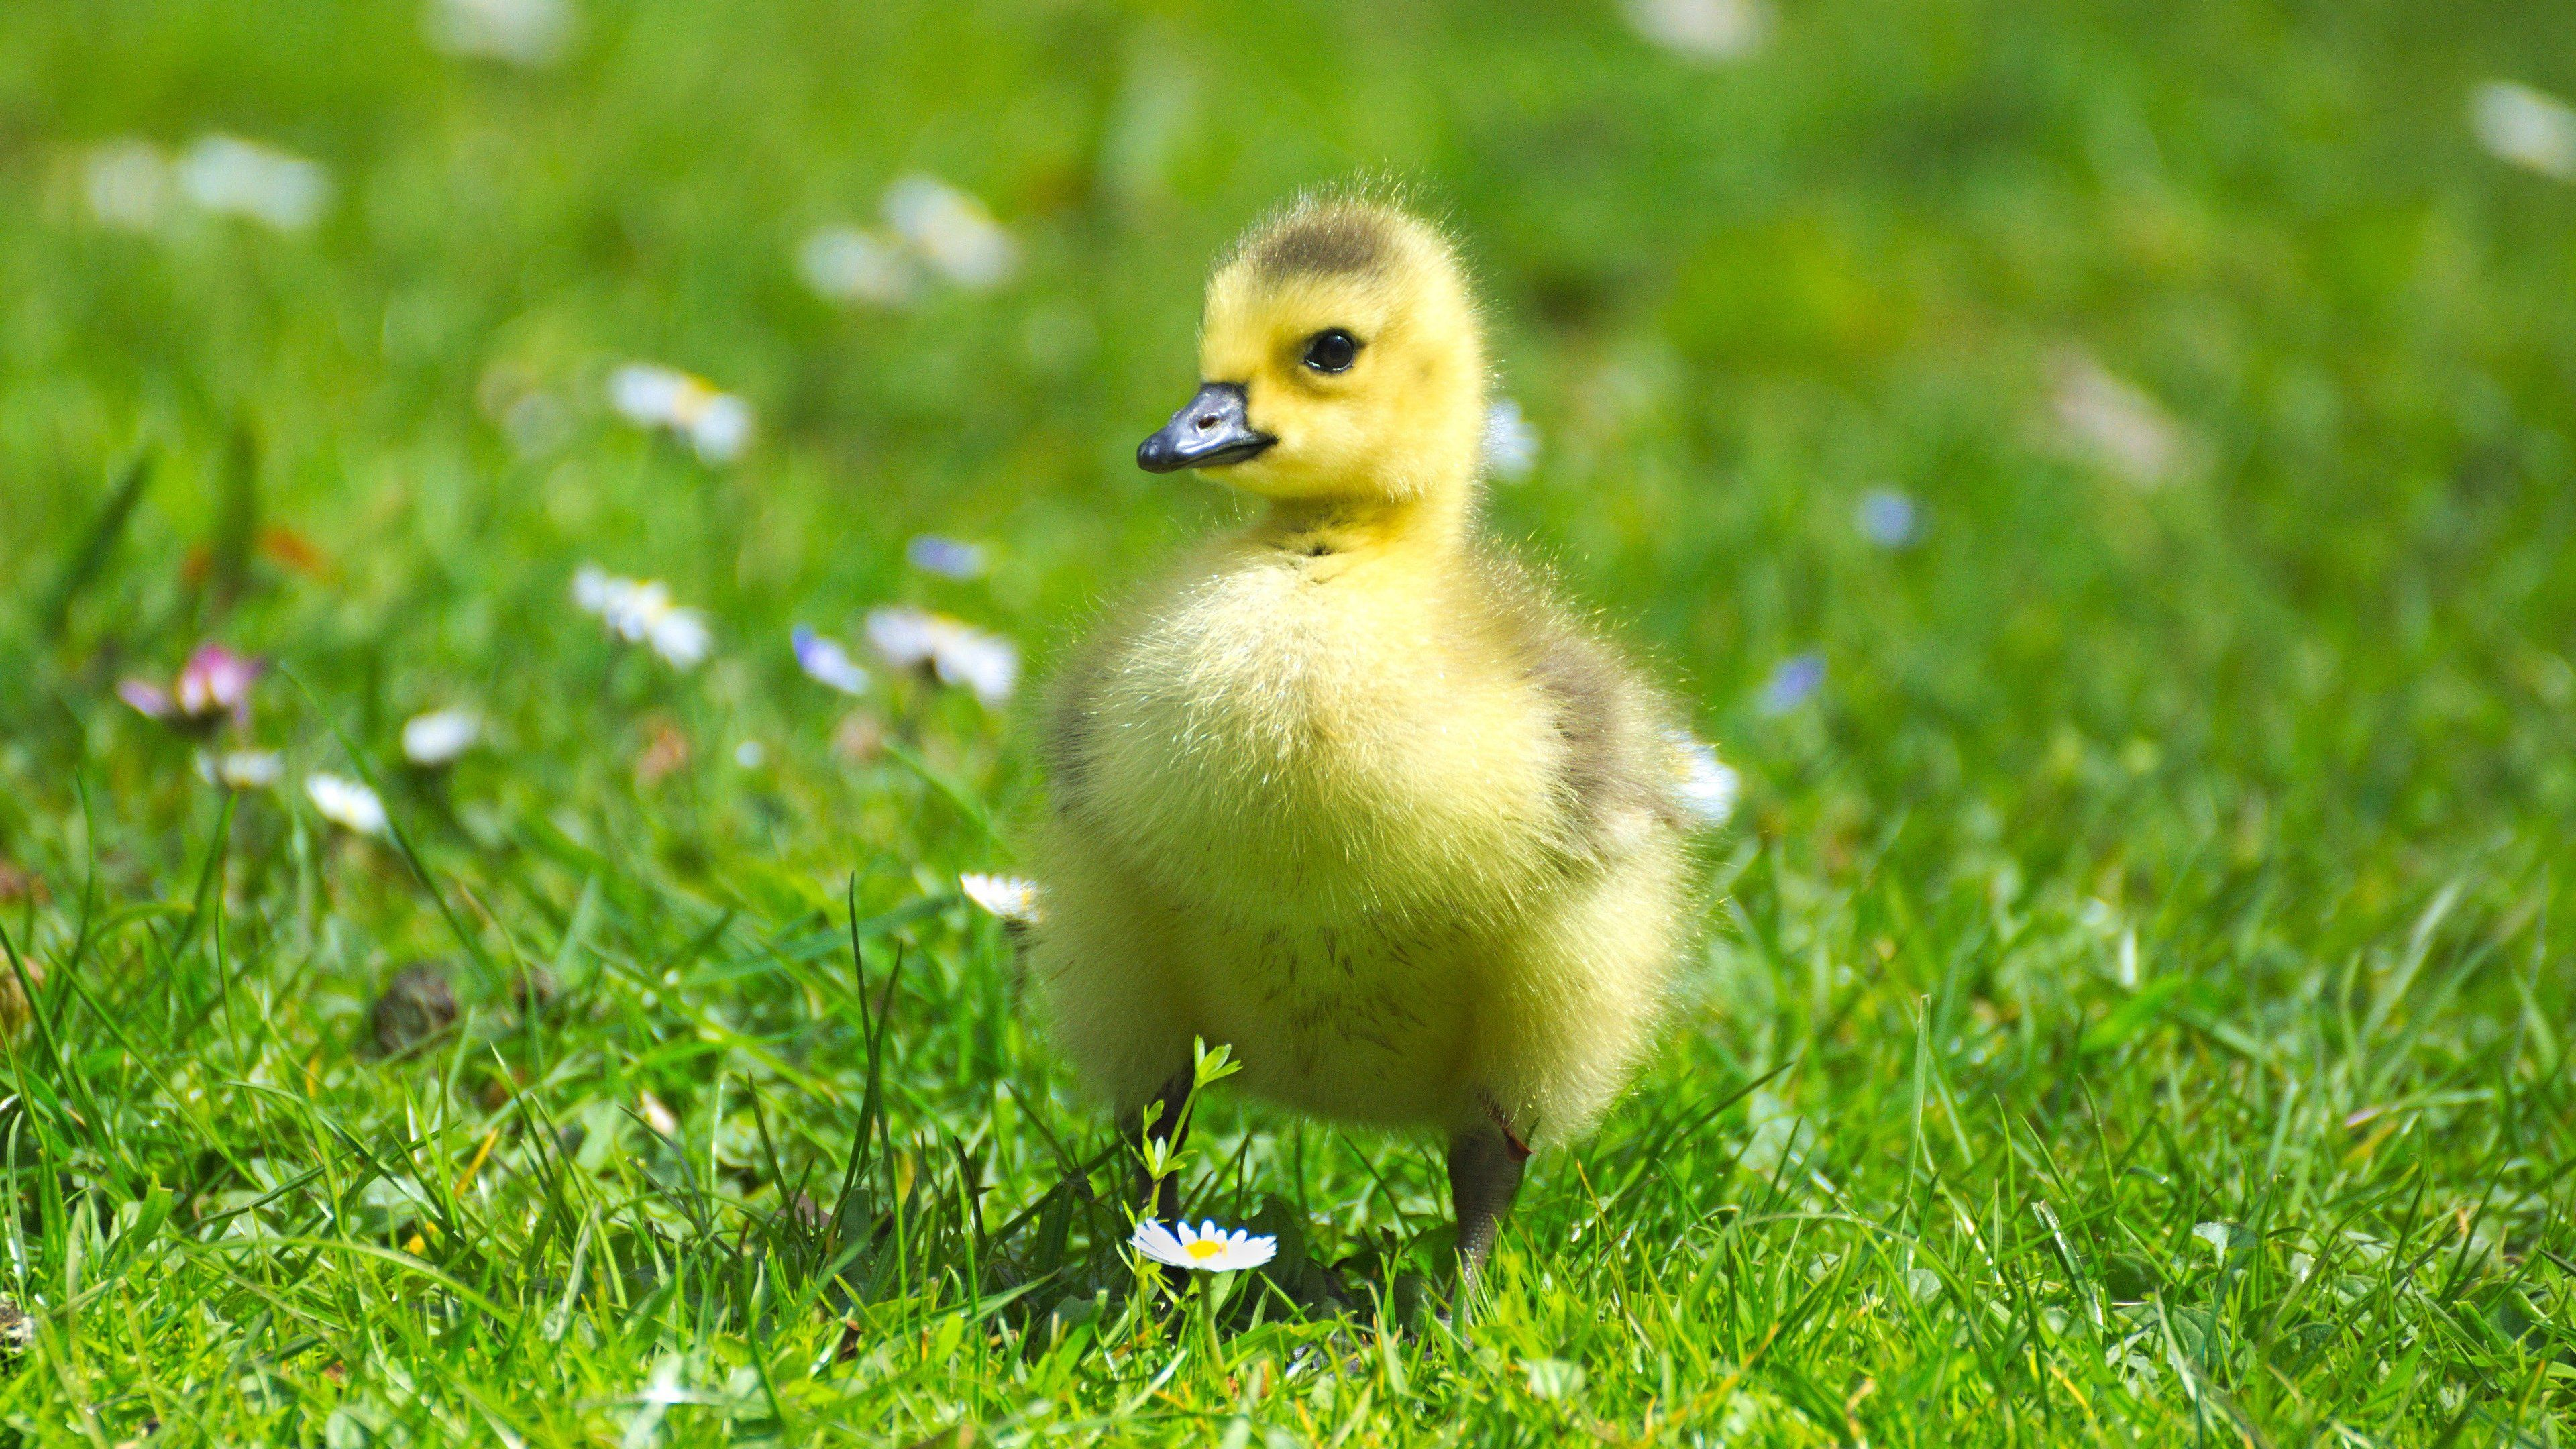 Fluffy Baby Goose Wallpaper - Mobile & Desktop Background